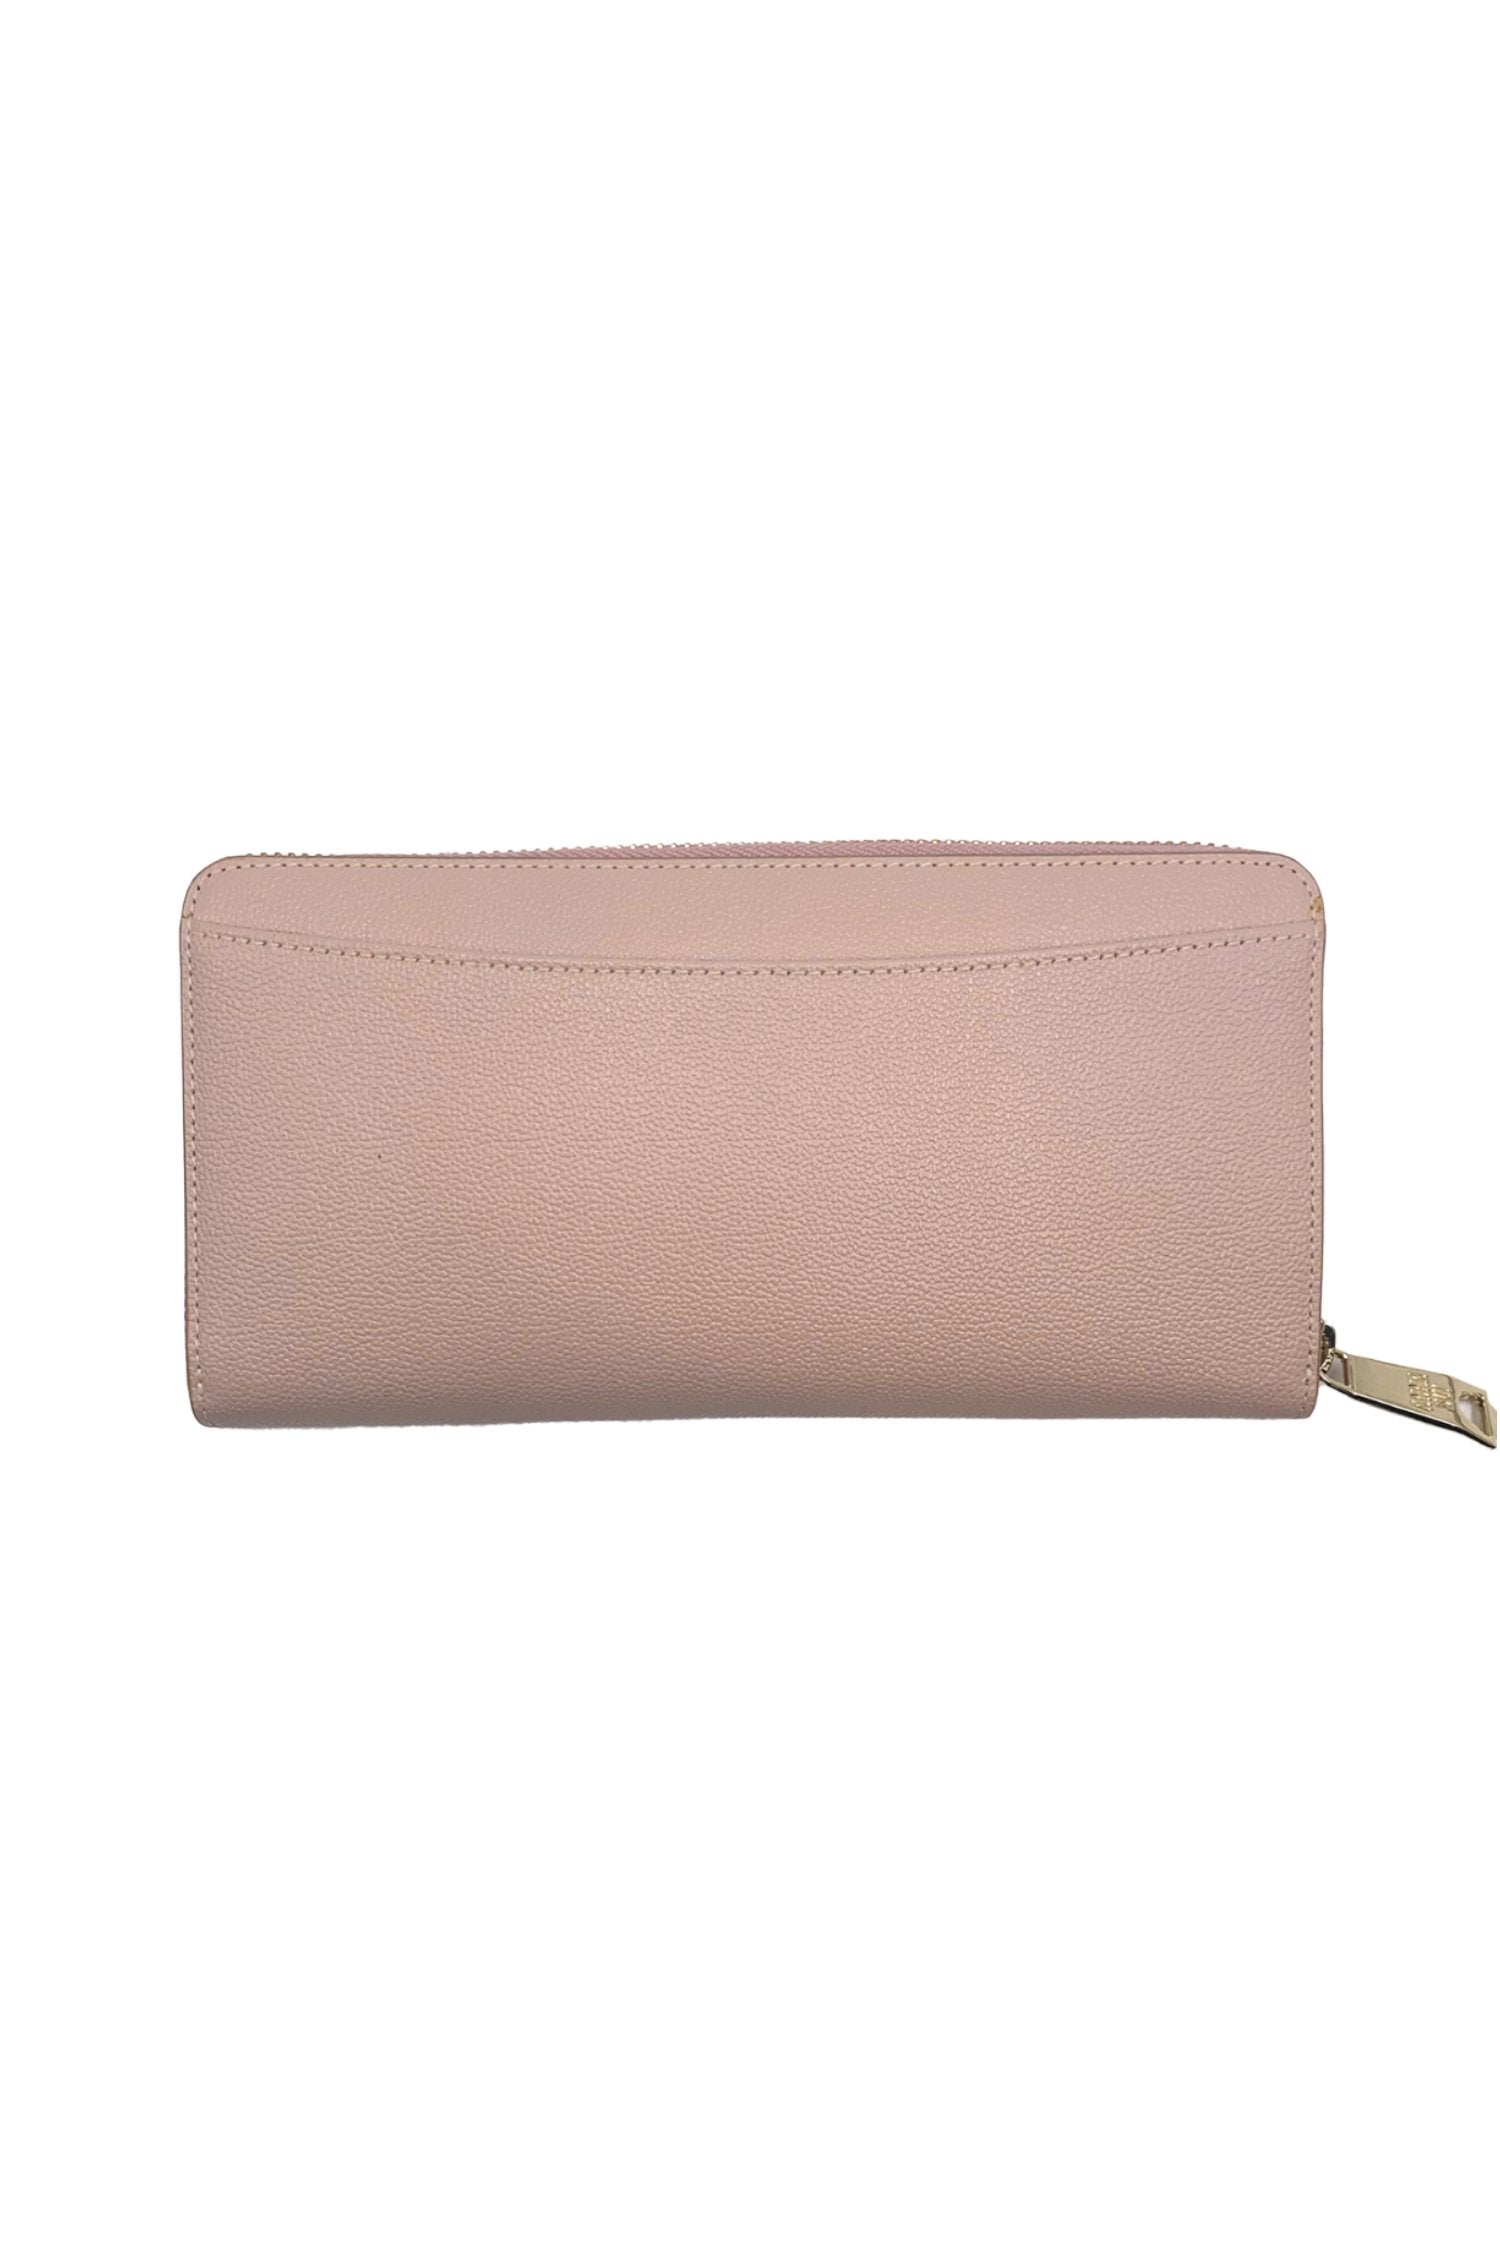 Butterfly Charm Dusty Pink Wallet - Anna Sui